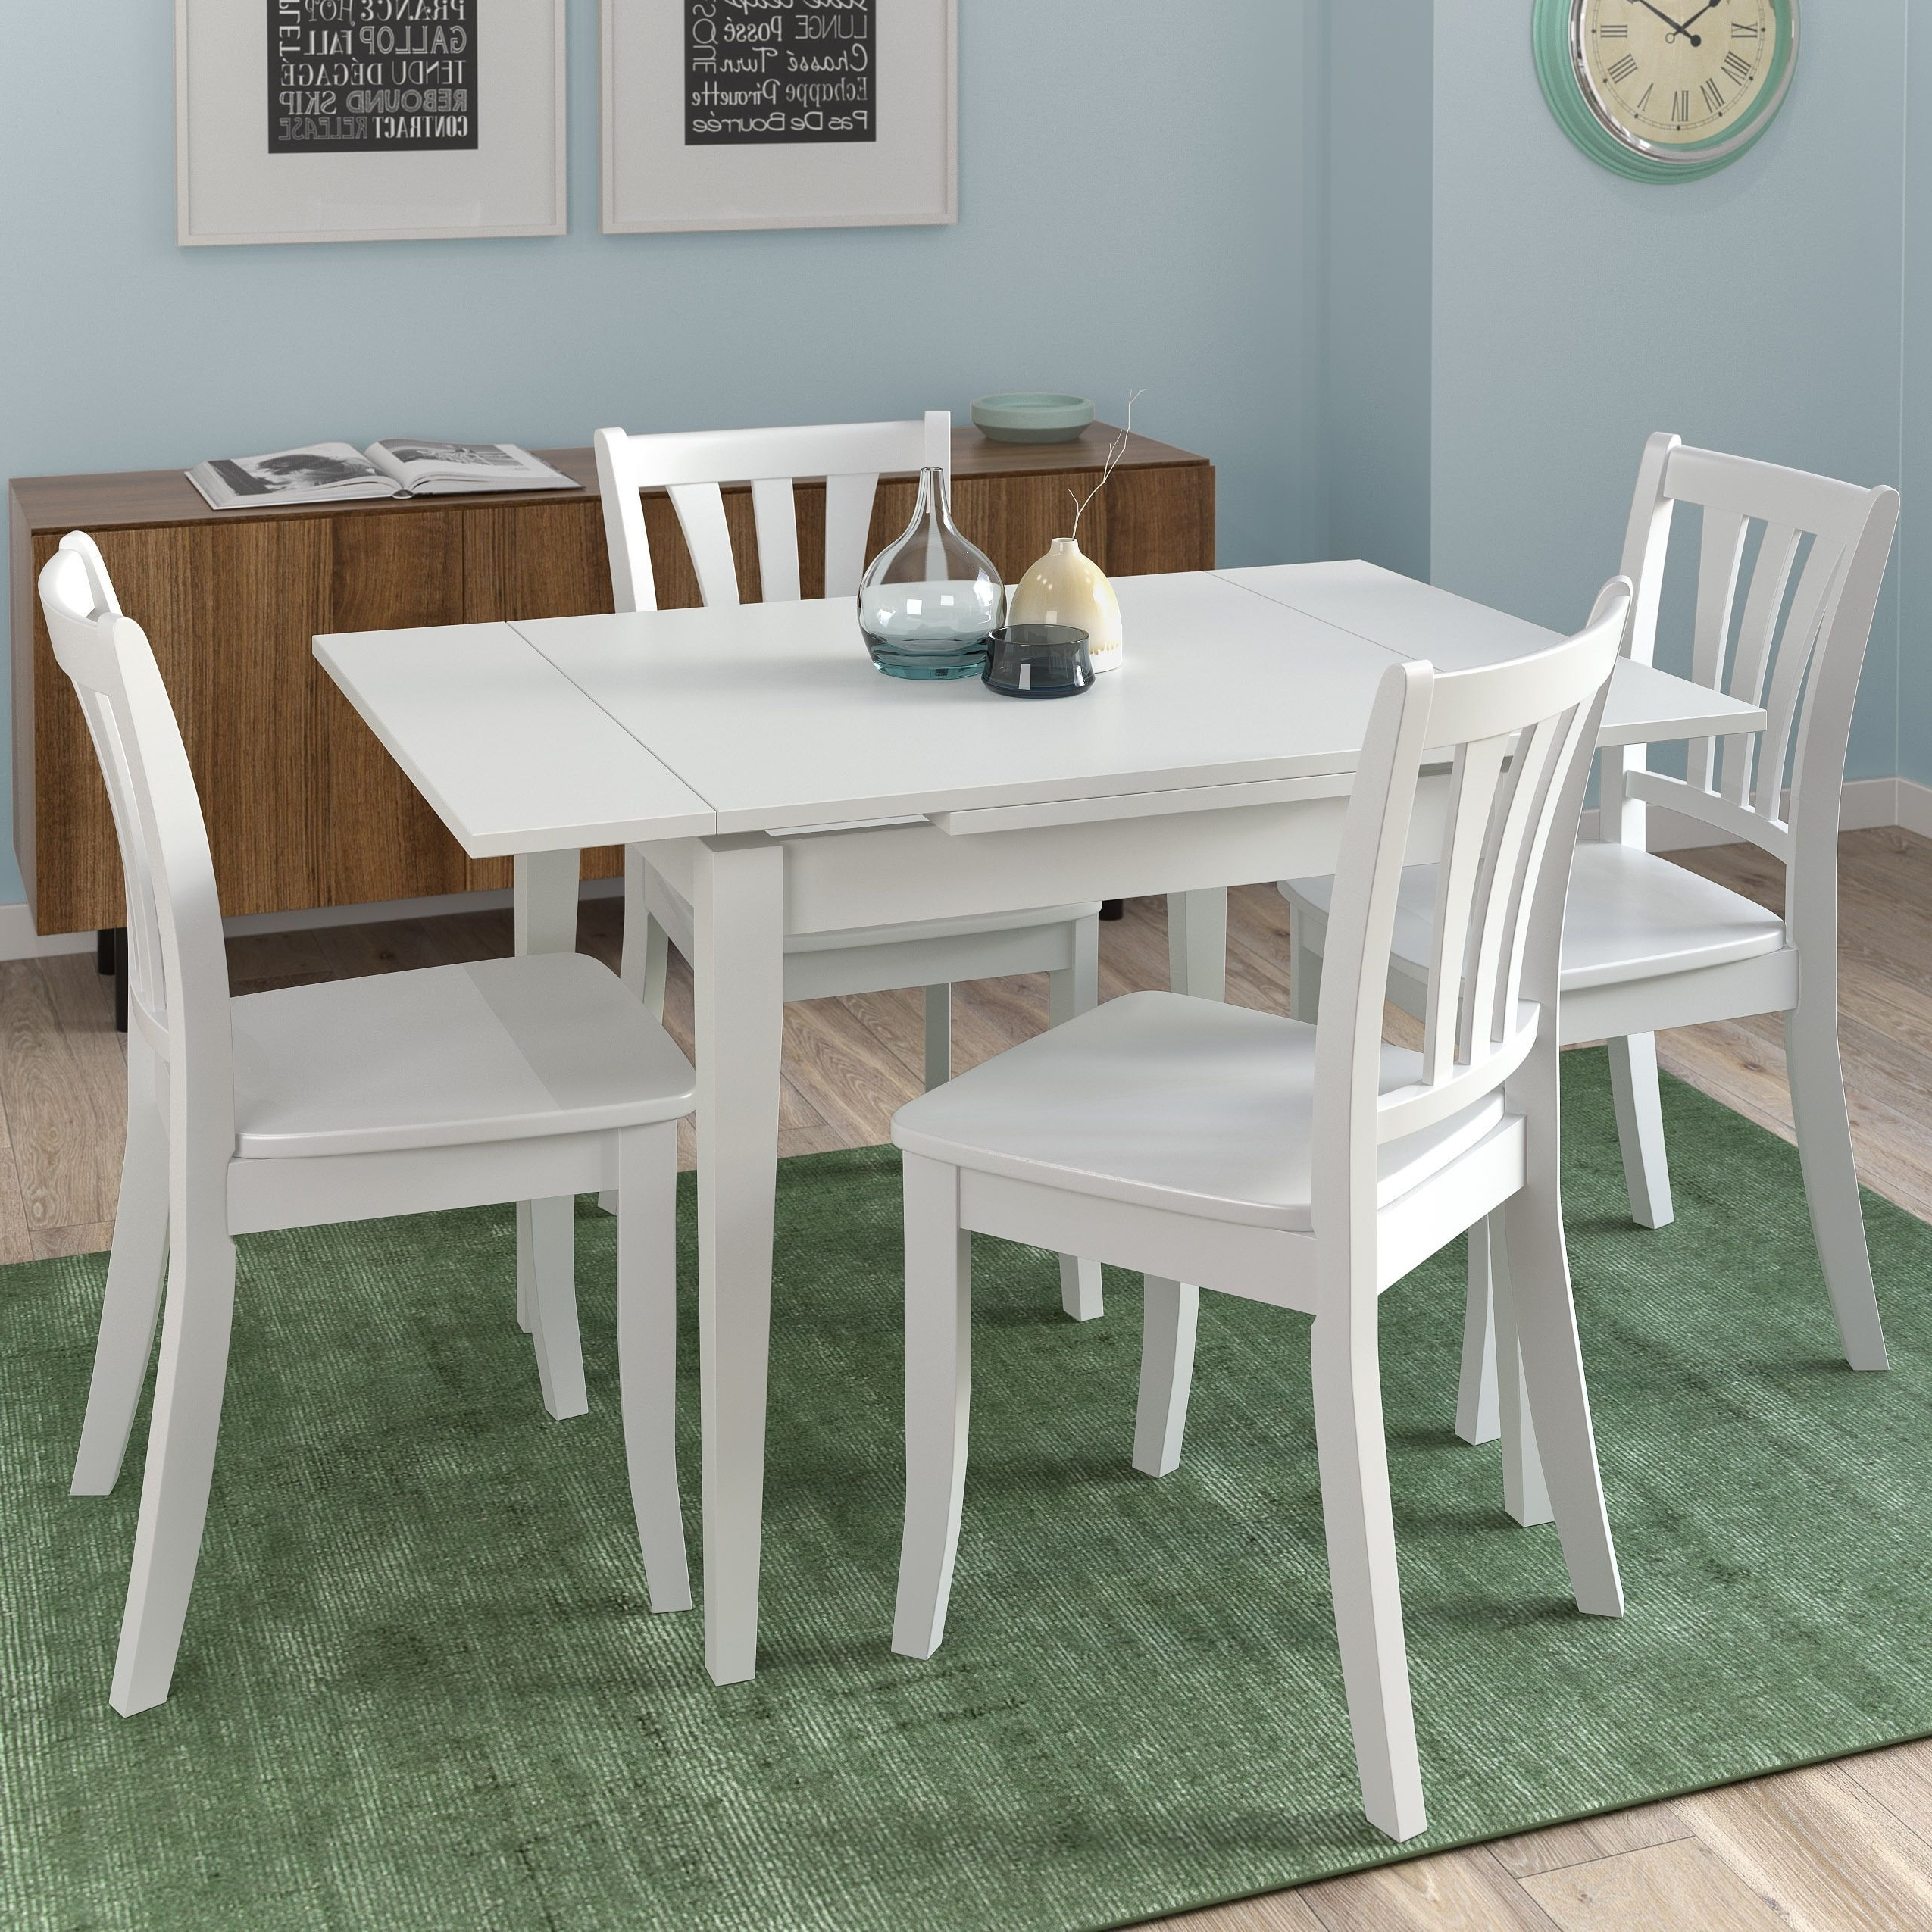 Latest Corliving Dillon White Wooden 5 Piece Extendable Dining Set (White With Regard To Extendable Dining Tables And Chairs (View 17 of 25)